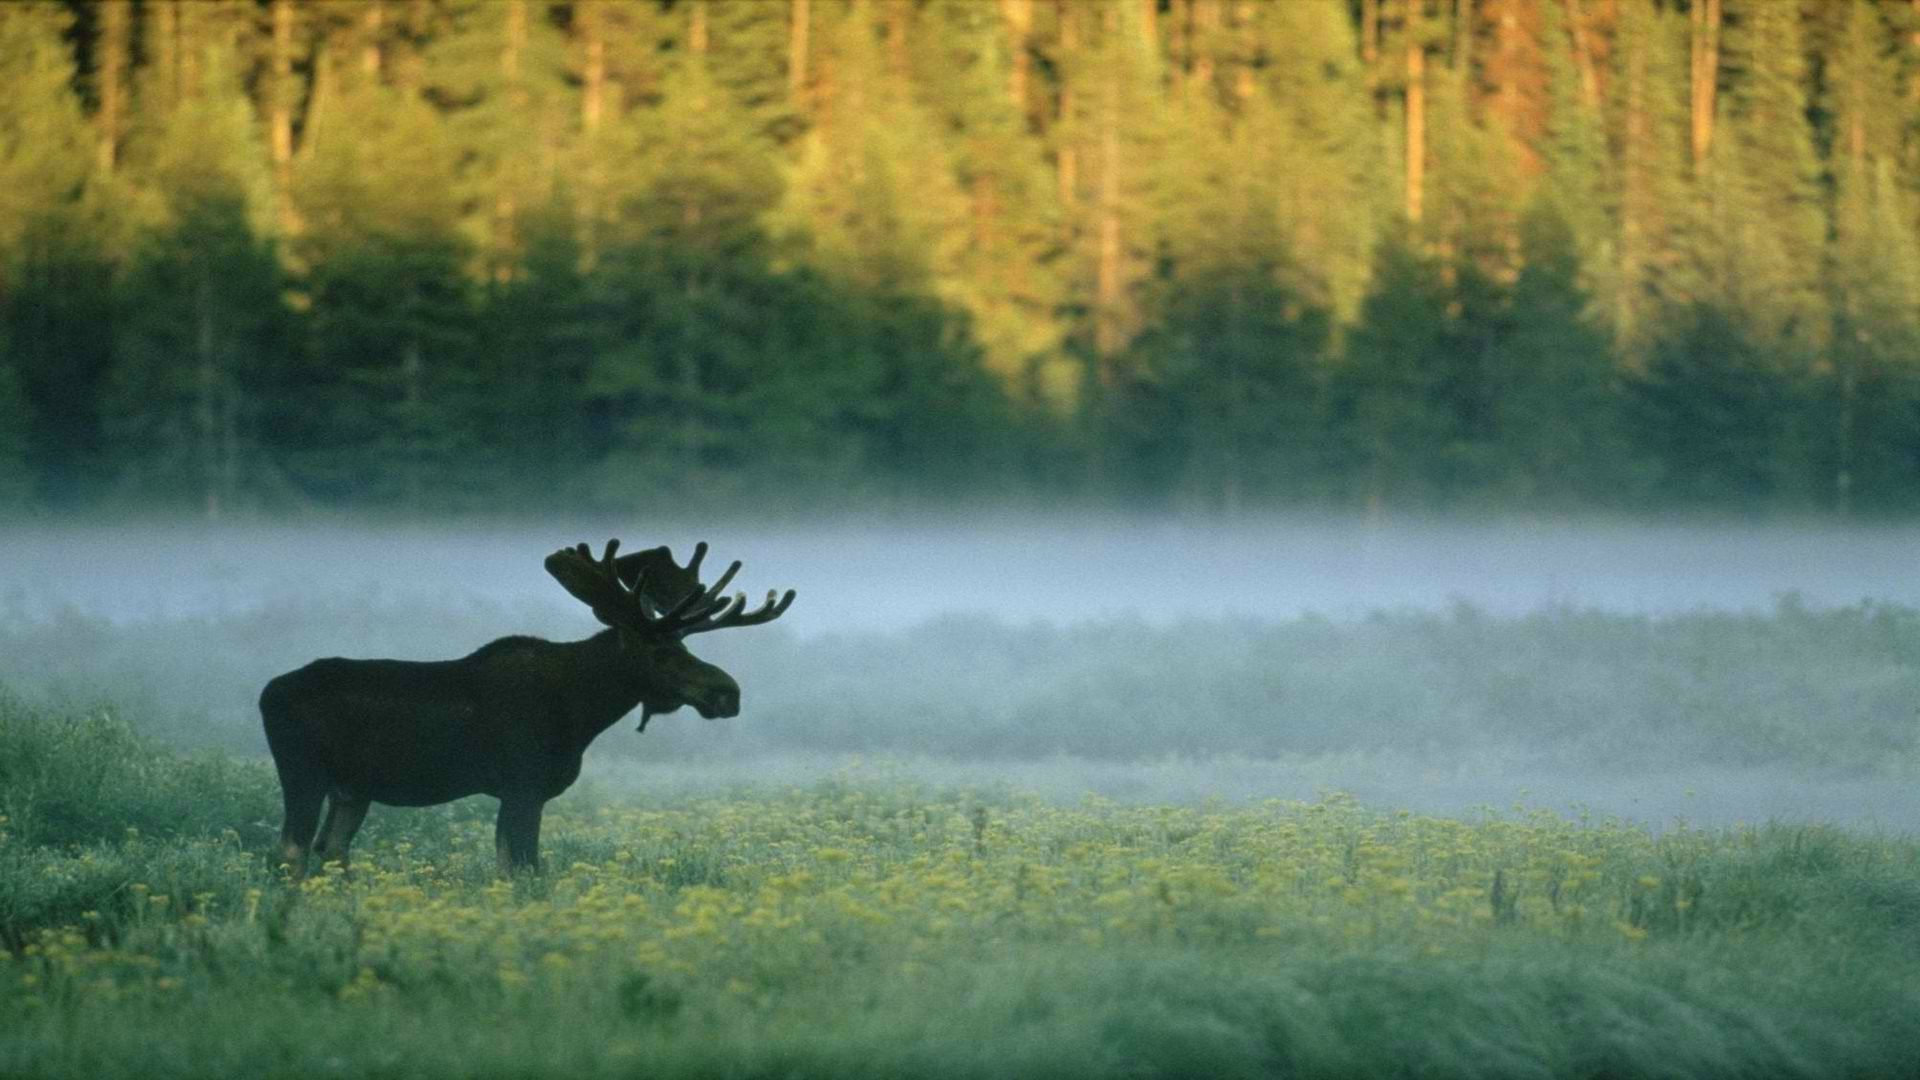 Download Hd Wallpapers Of 196570 Forest Moose Nature Animals Free Download High Quality And Widescreen Resolutions In 2021 Moose Pictures Animal Wallpaper Animals